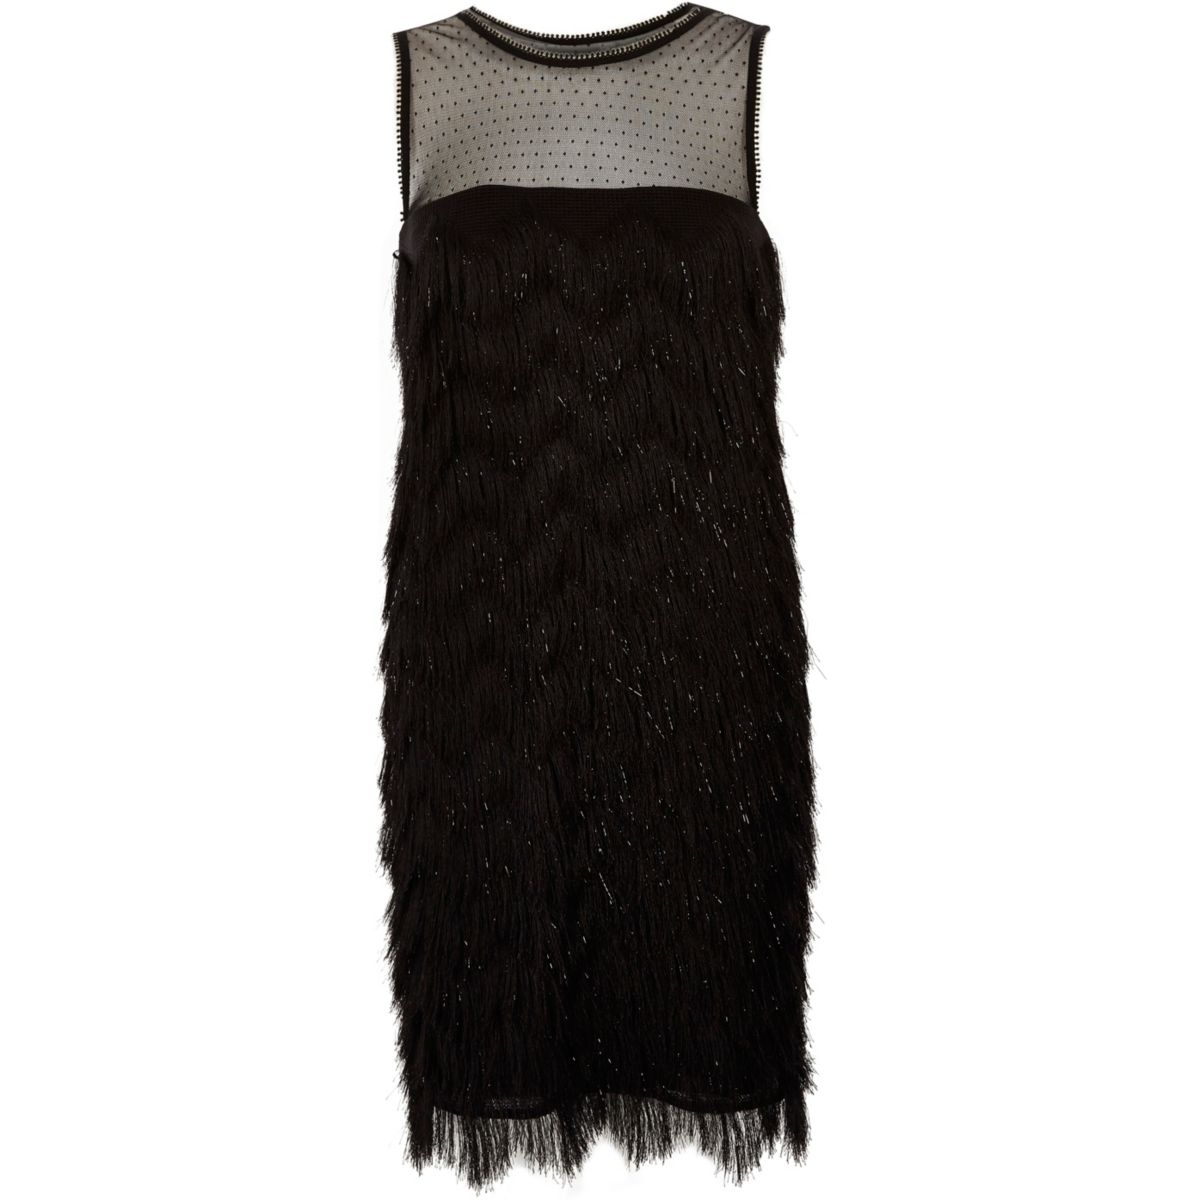 Black fringe dobby mesh sleeveless dress